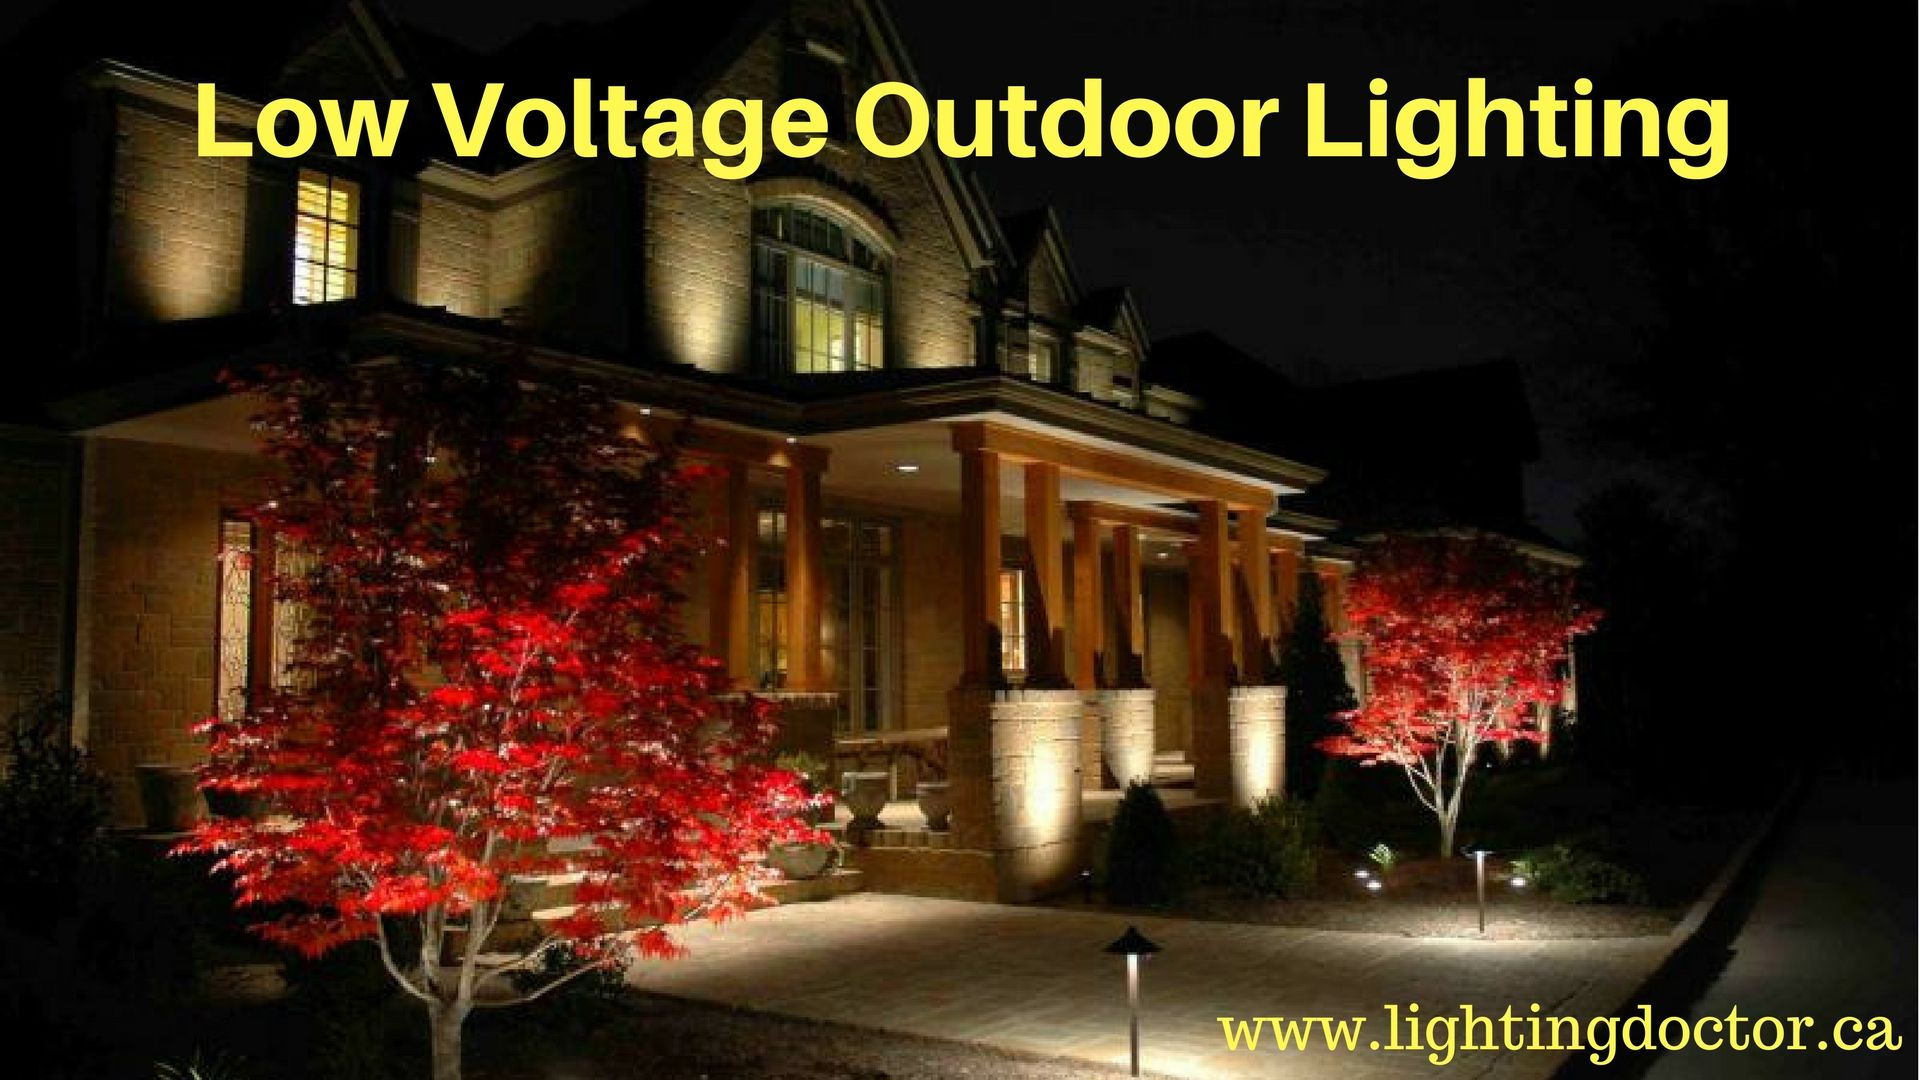 Highlight landscape with low voltage outdoor lighting canada low highlight landscape with low voltage outdoor lighting canada low voltage outdoor lighting highlights the house and aloadofball Gallery